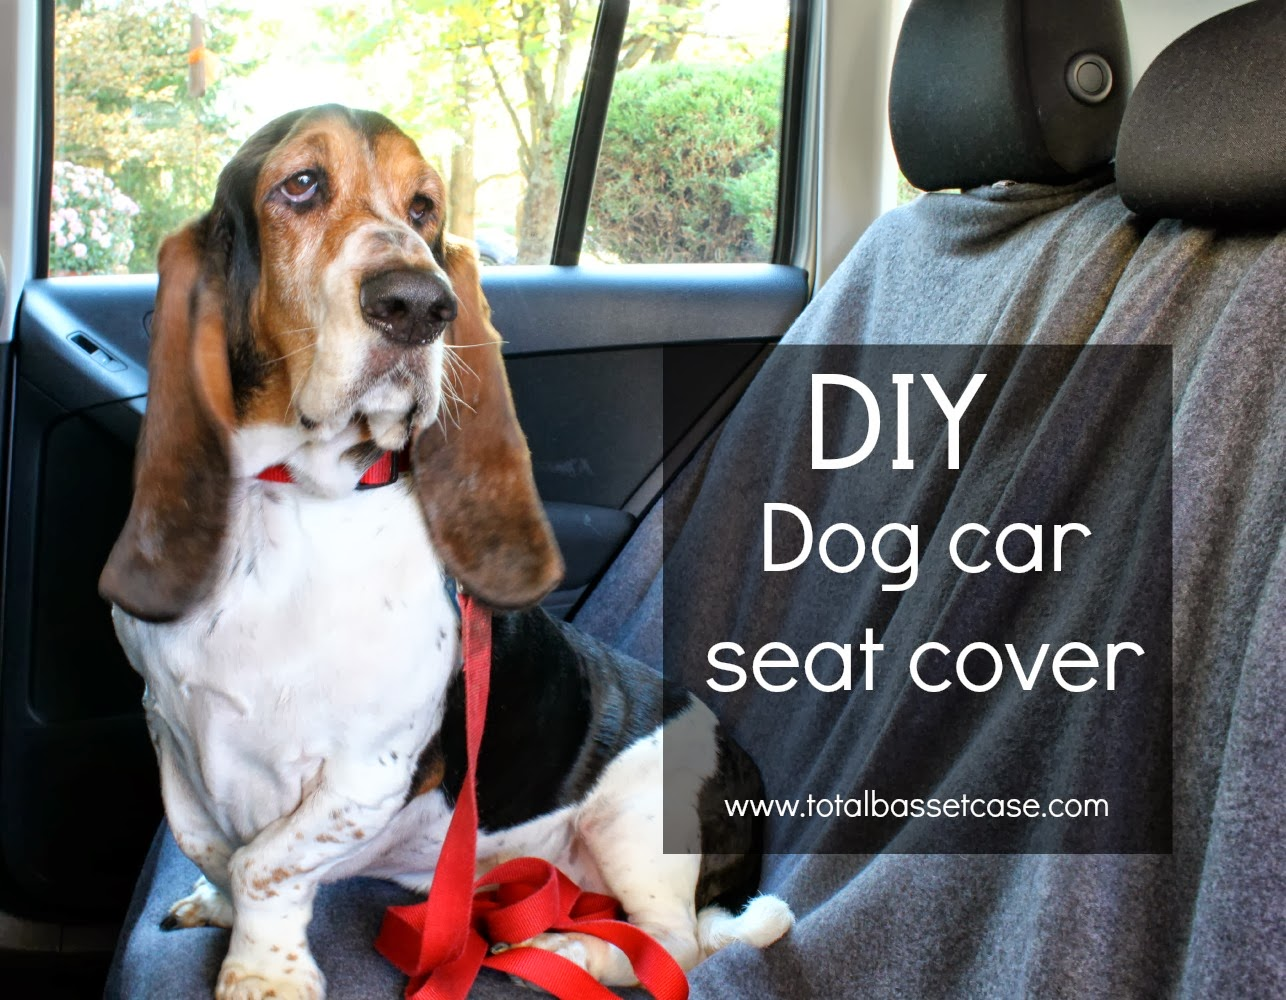 DIY Dog Car Seat Cover